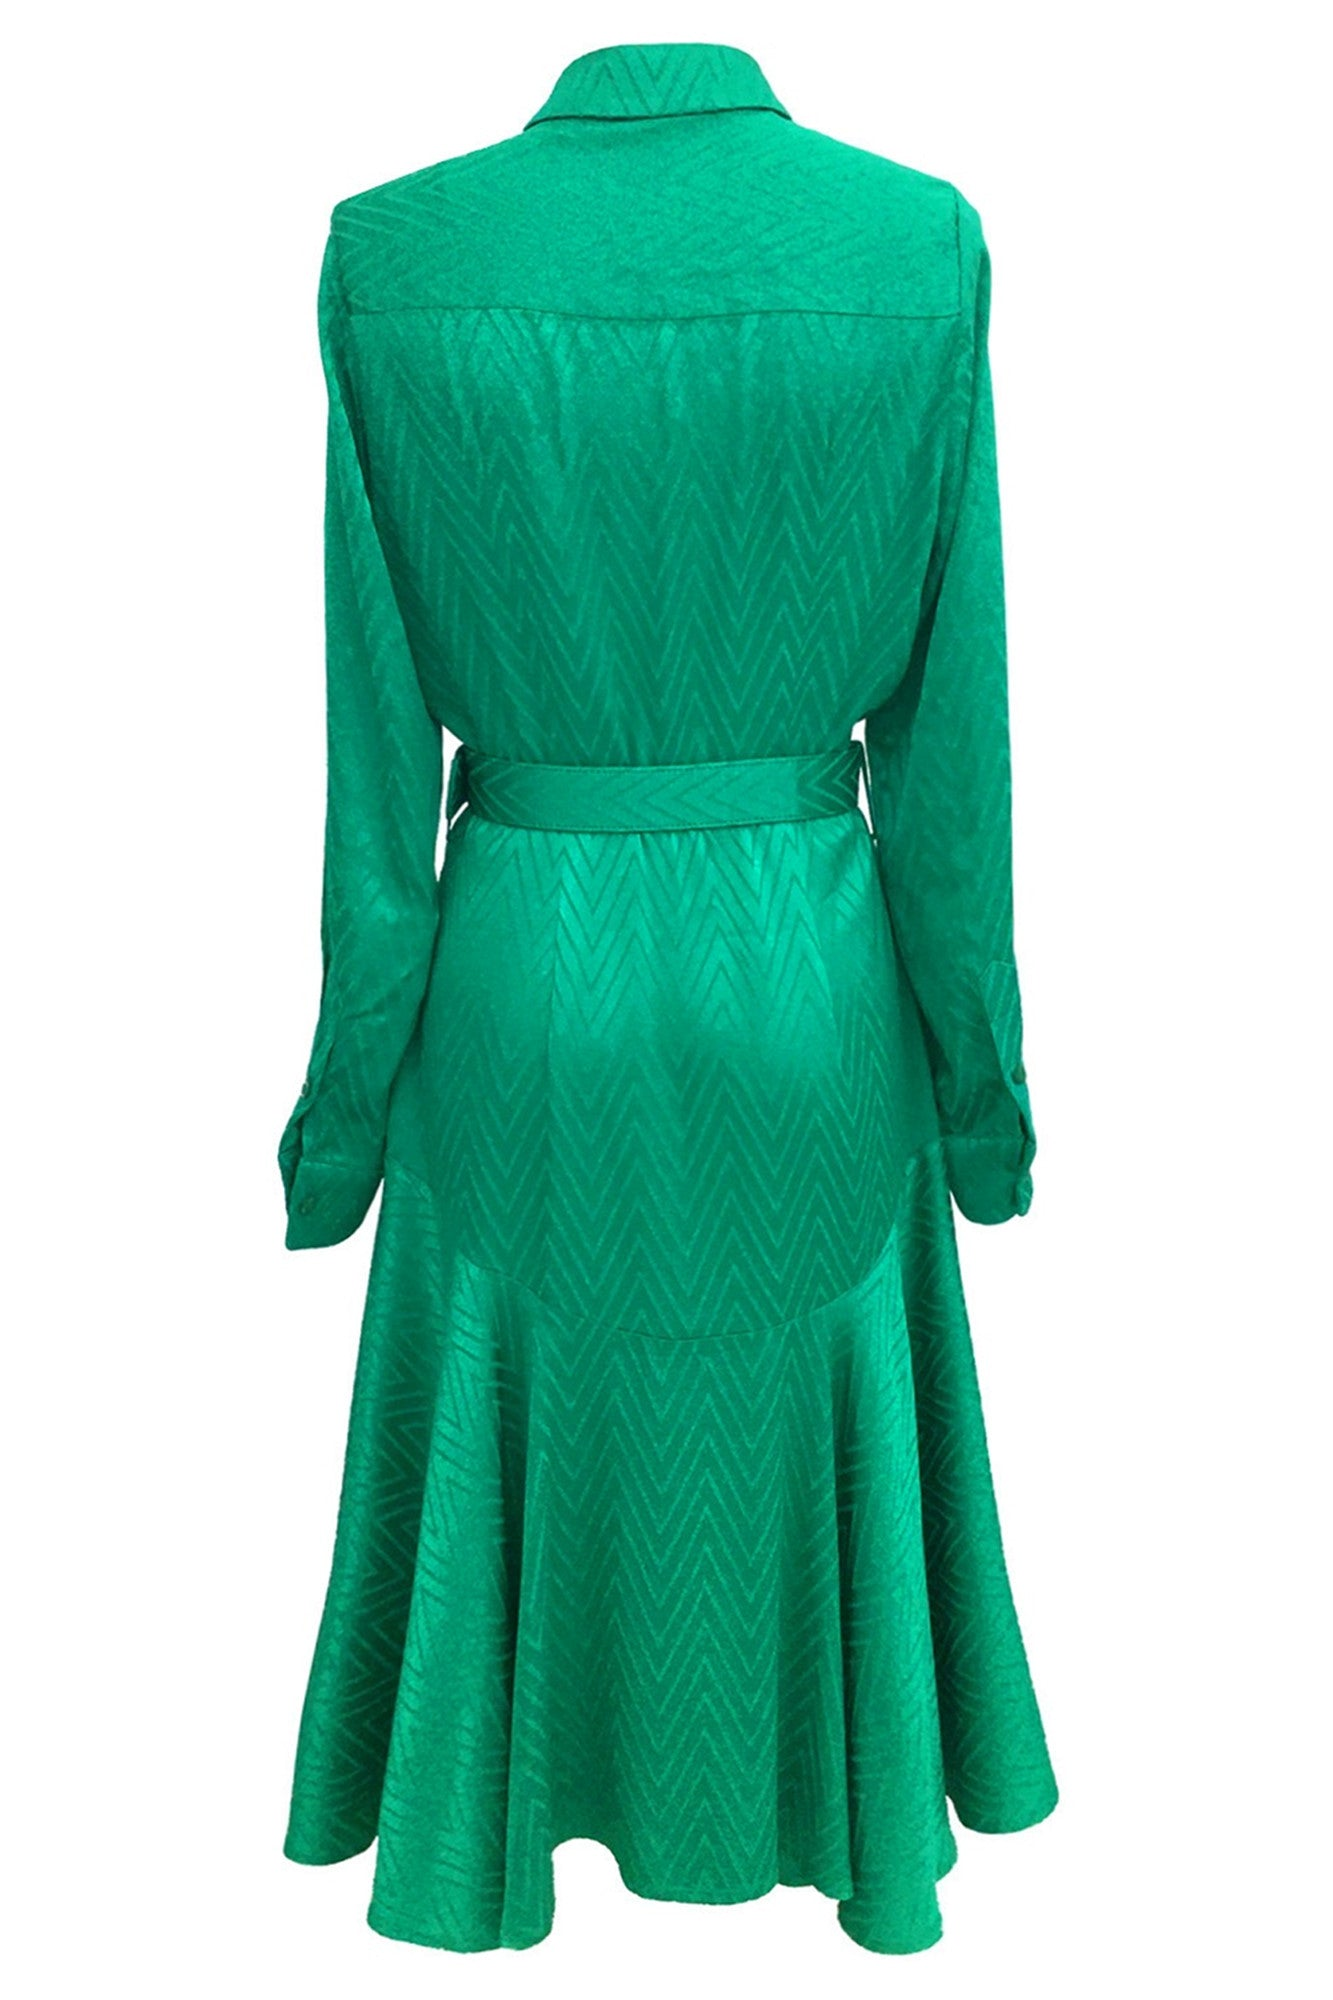 Emerald midi shirt dress